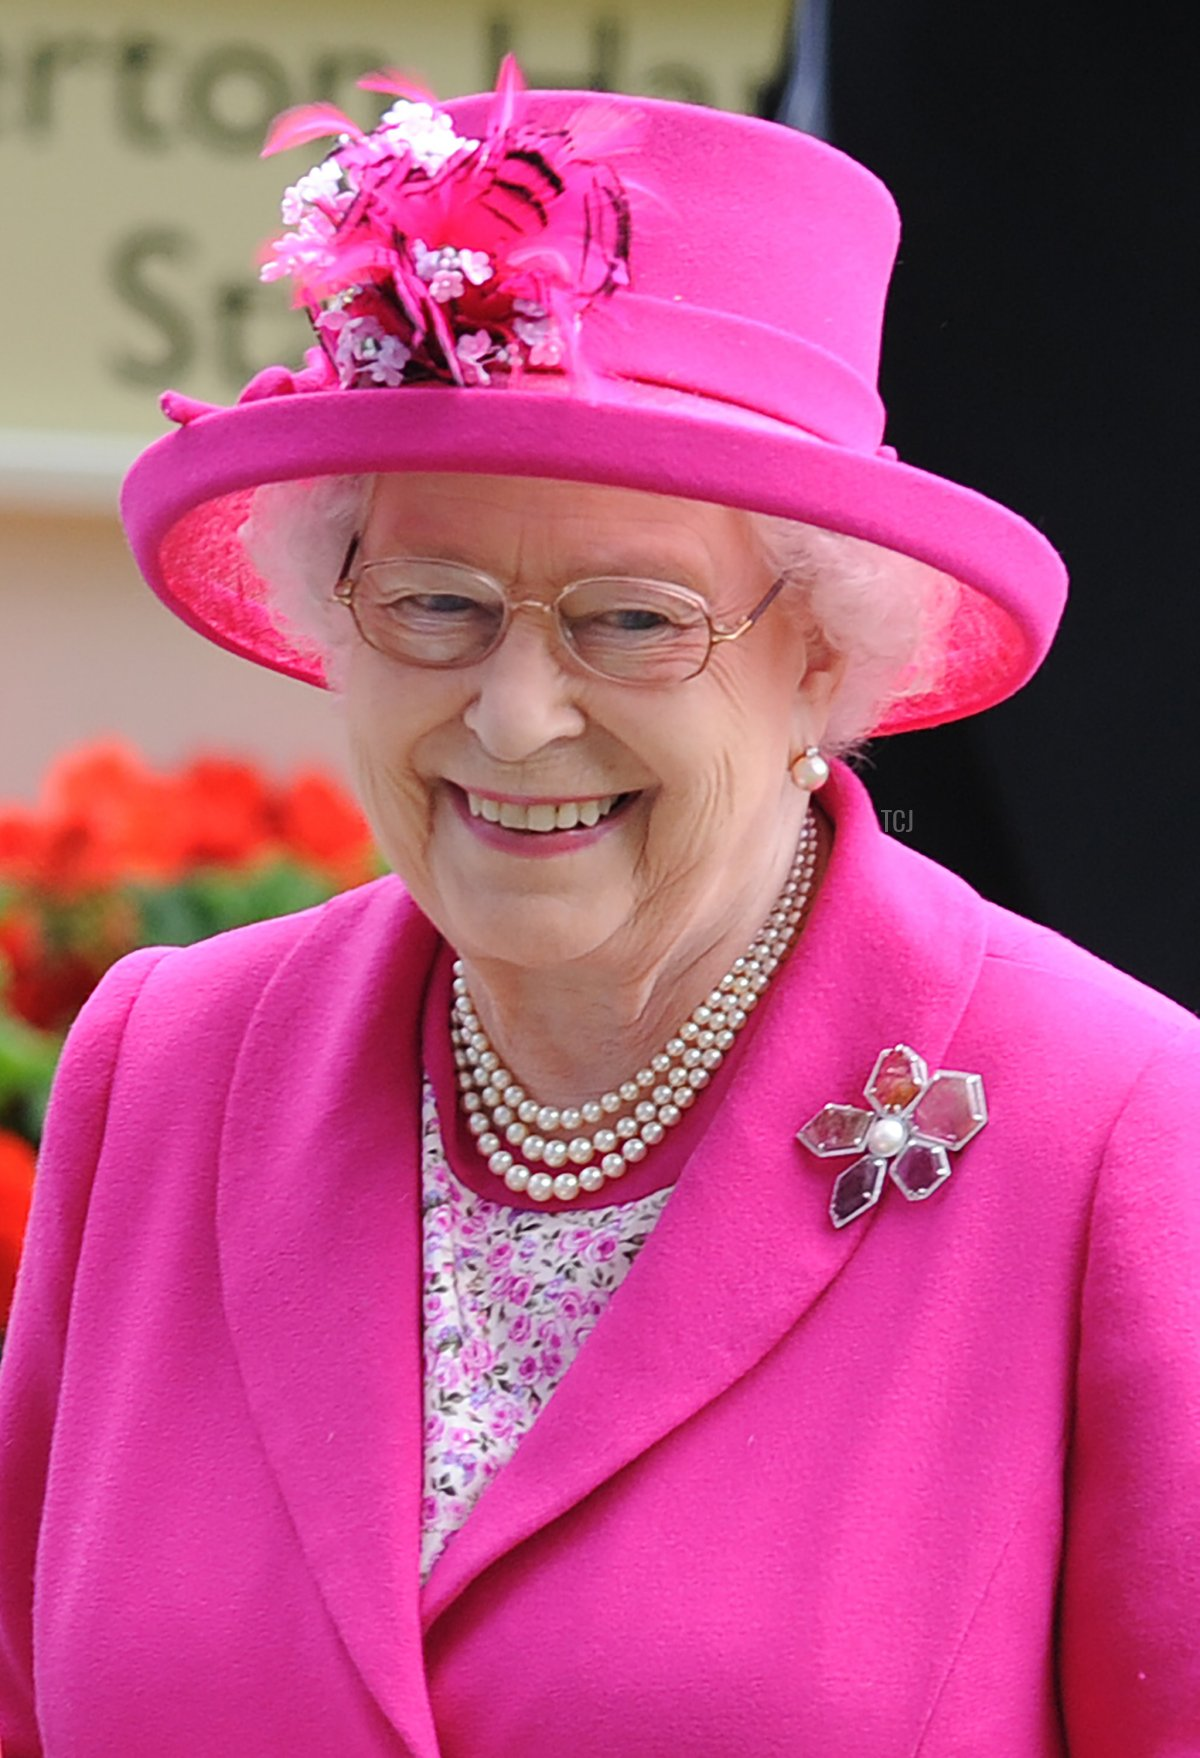 Queen Elizabeth II attends Day 4 of Royal Ascot at Ascot Racecourse on June 20, 2014 in Ascot, England